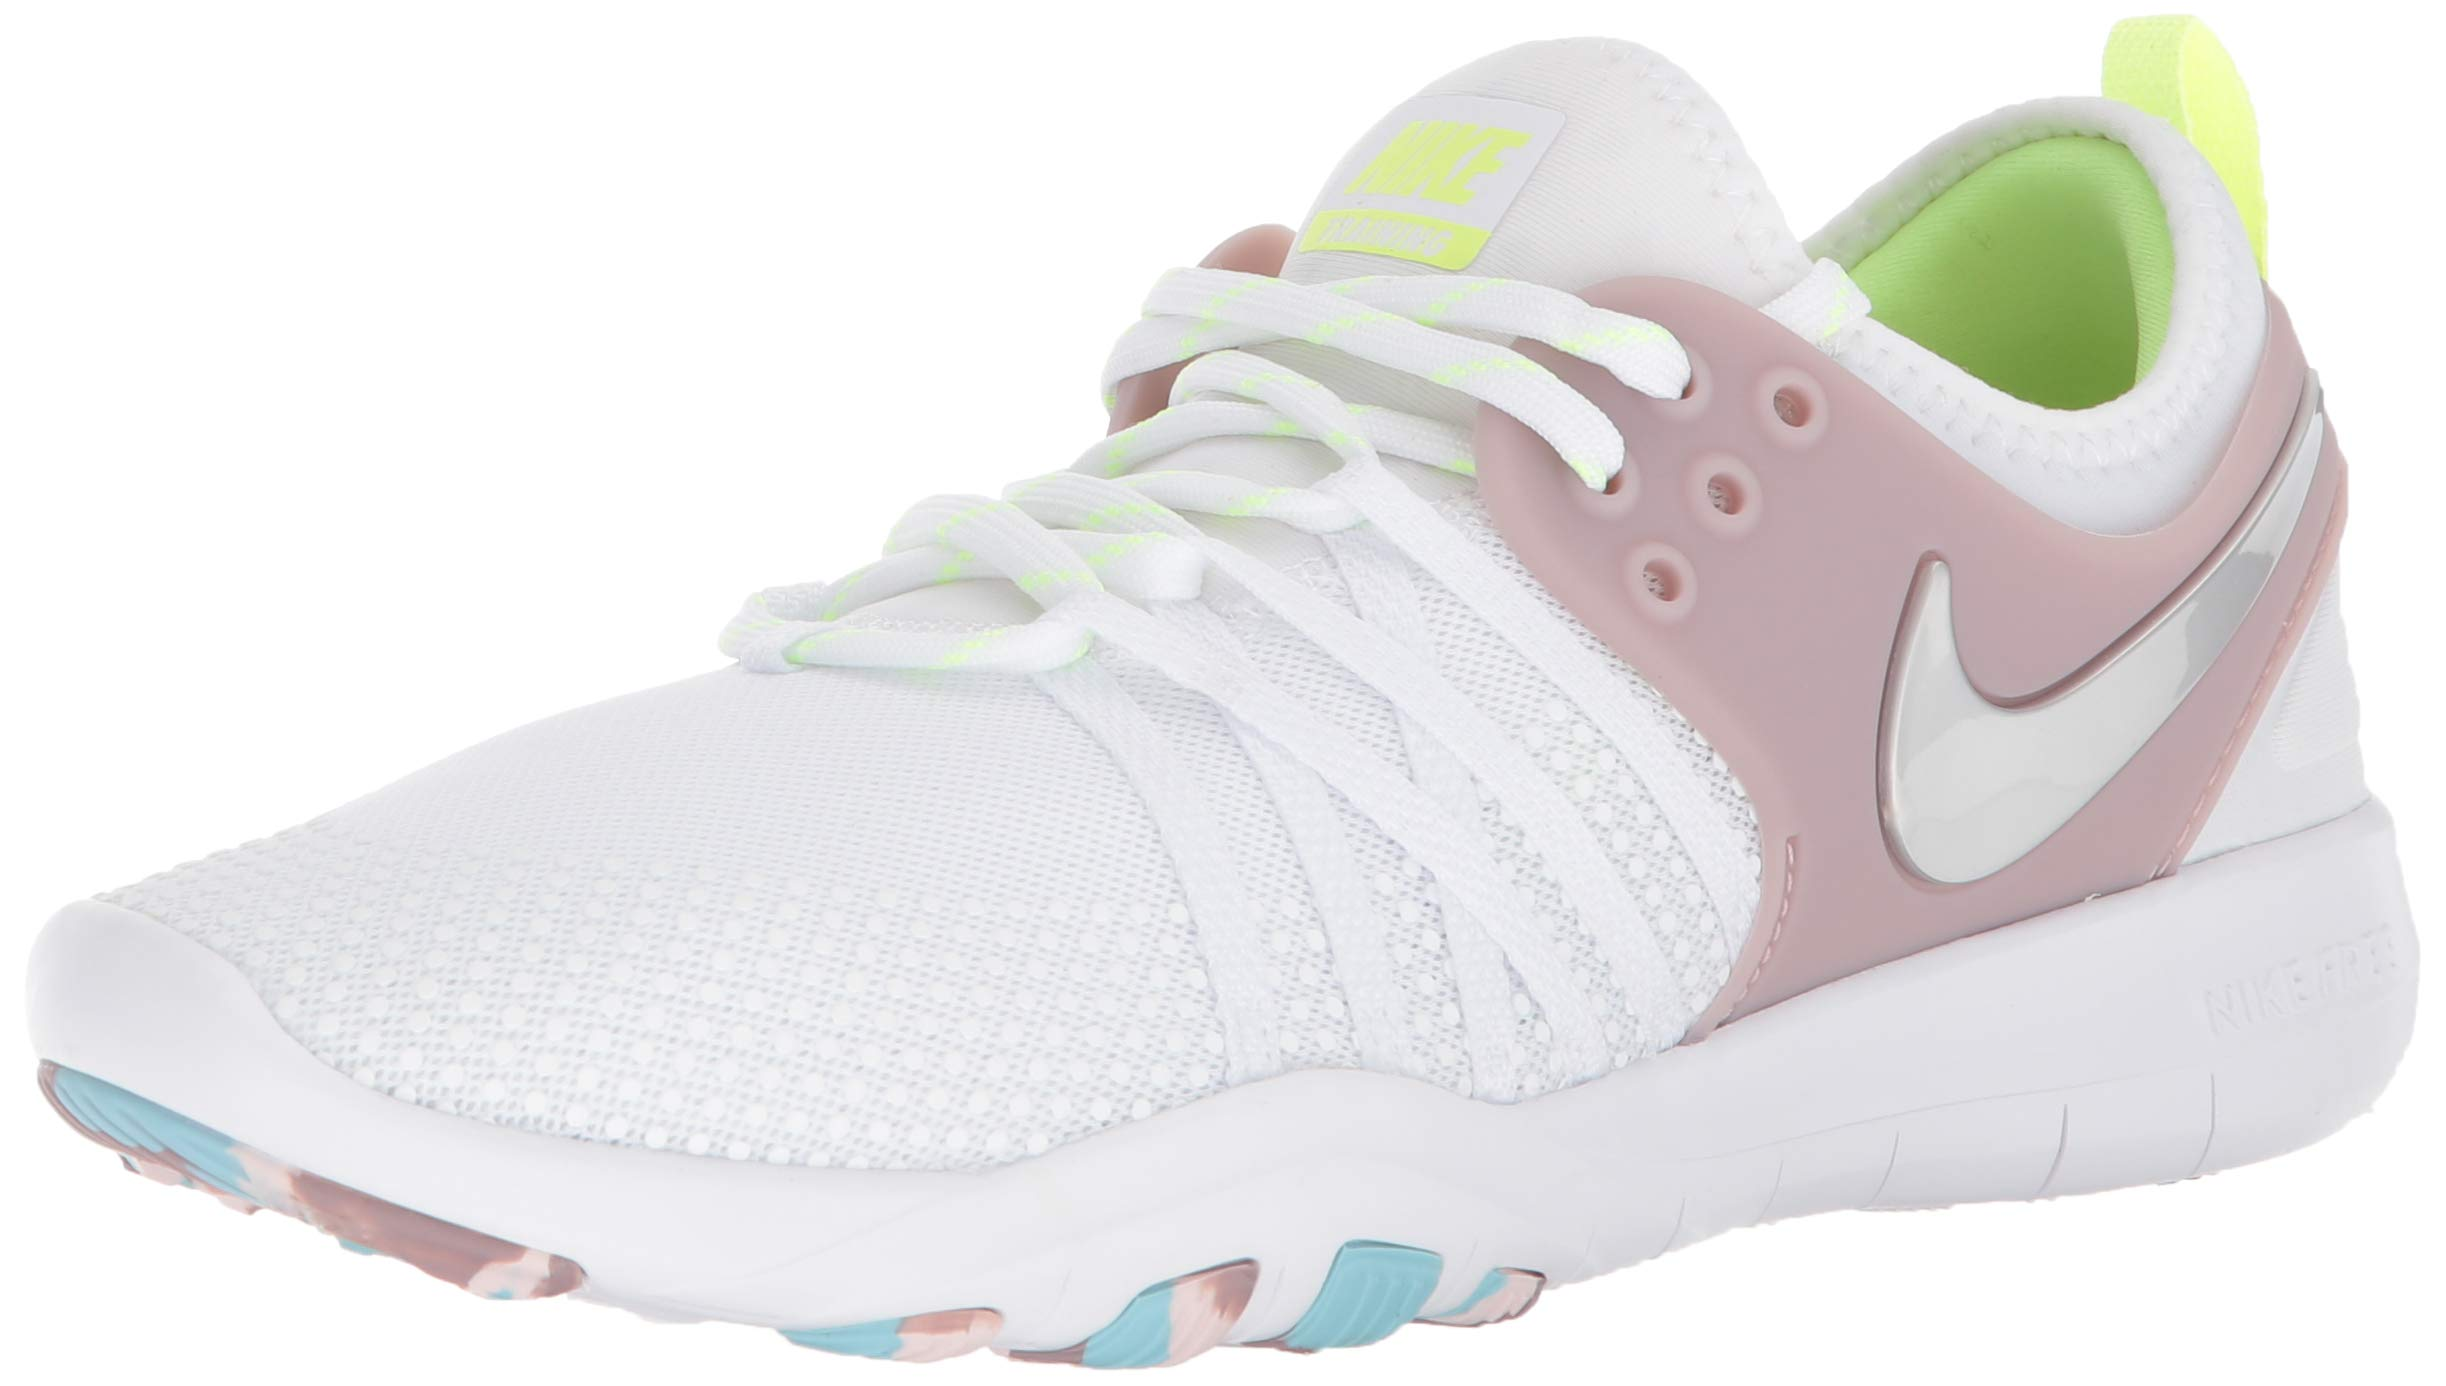 newest c7710 10fa3 Nike Women's WMNS Free Tr 7 Trainers, White (White/Elemental Rose/Volt  Glow/Metallic Silver 102) 10 M US